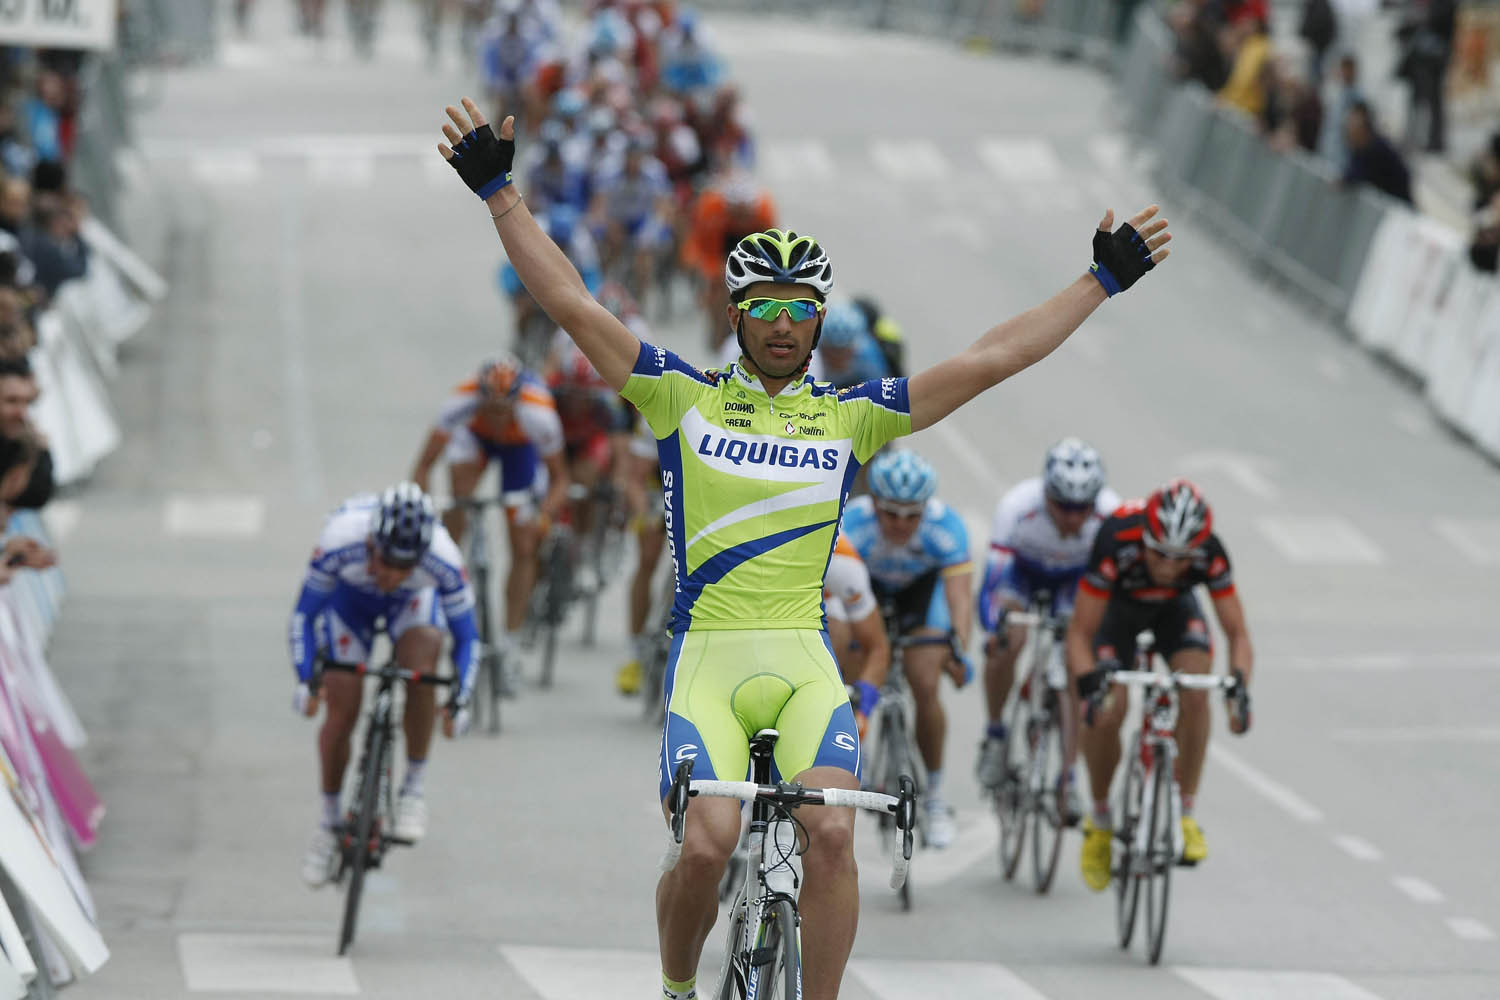 Daniele Bennati wins stage three